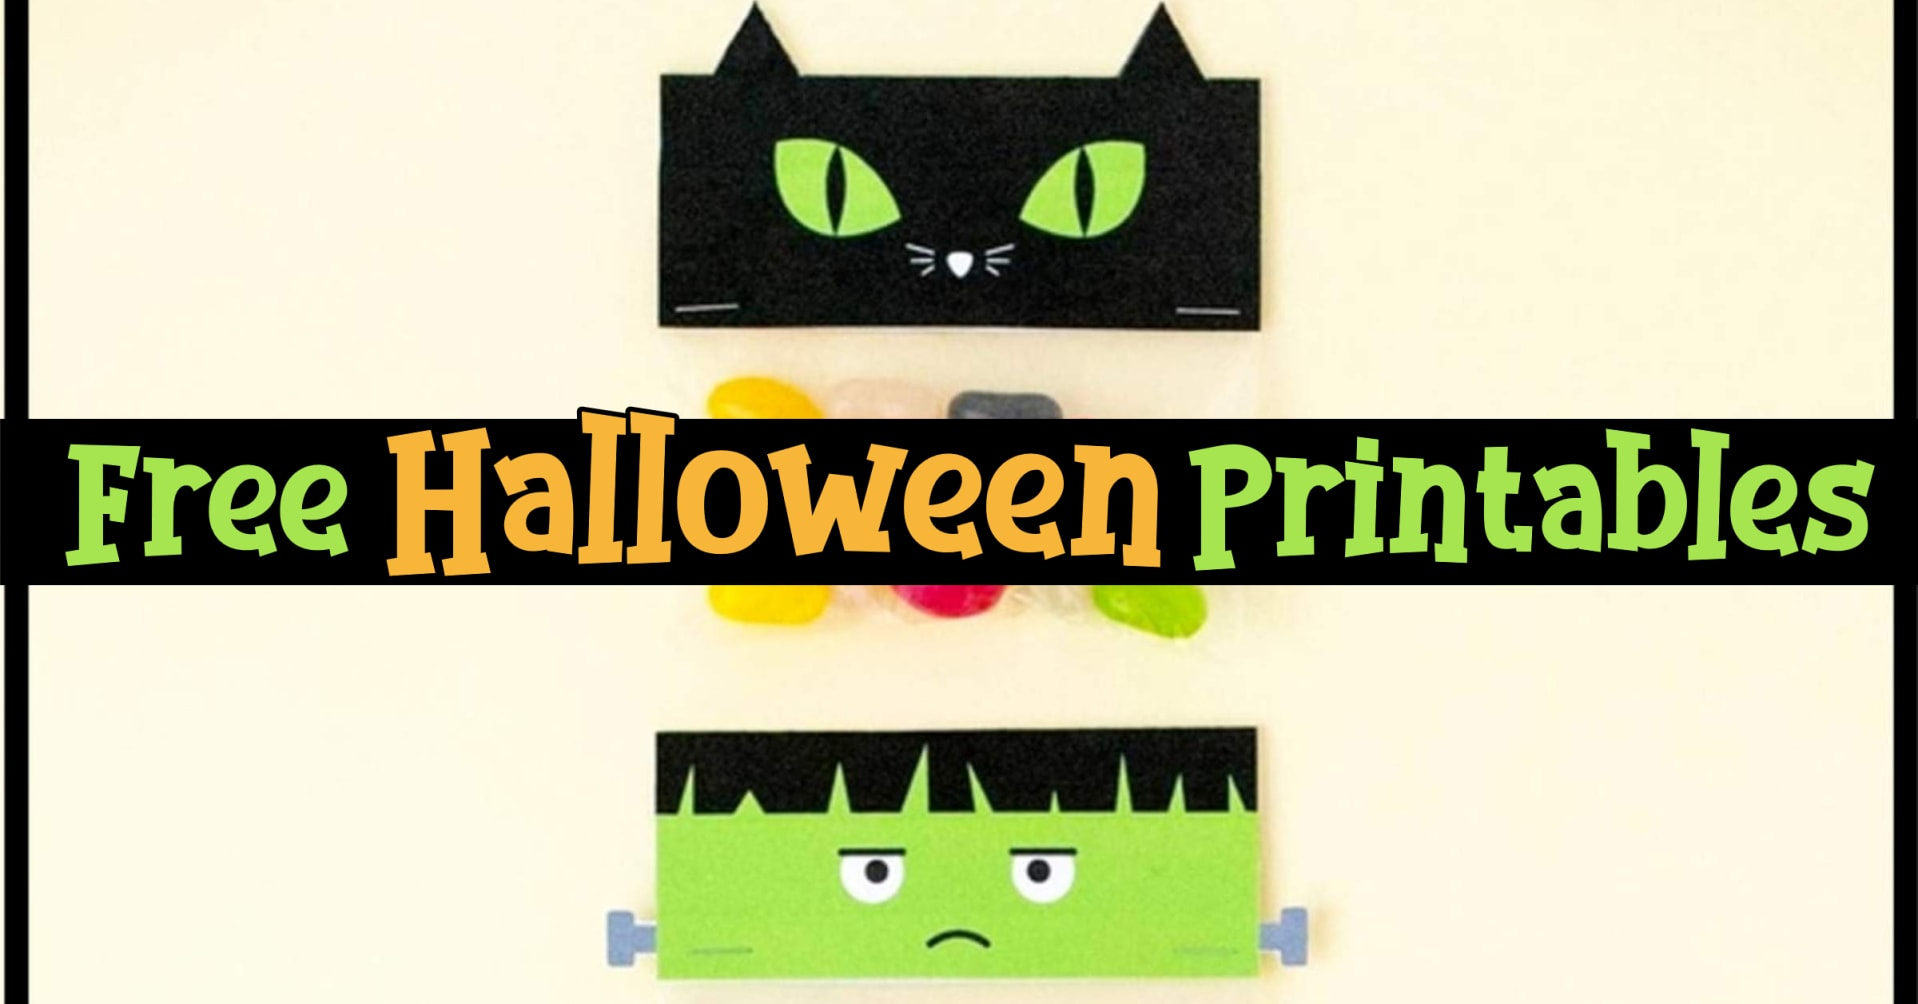 Halloween Printables - happy halloween printables and halloween crafts for kids all free printables - halloween coloring pages and halloween party printables for adults and kids